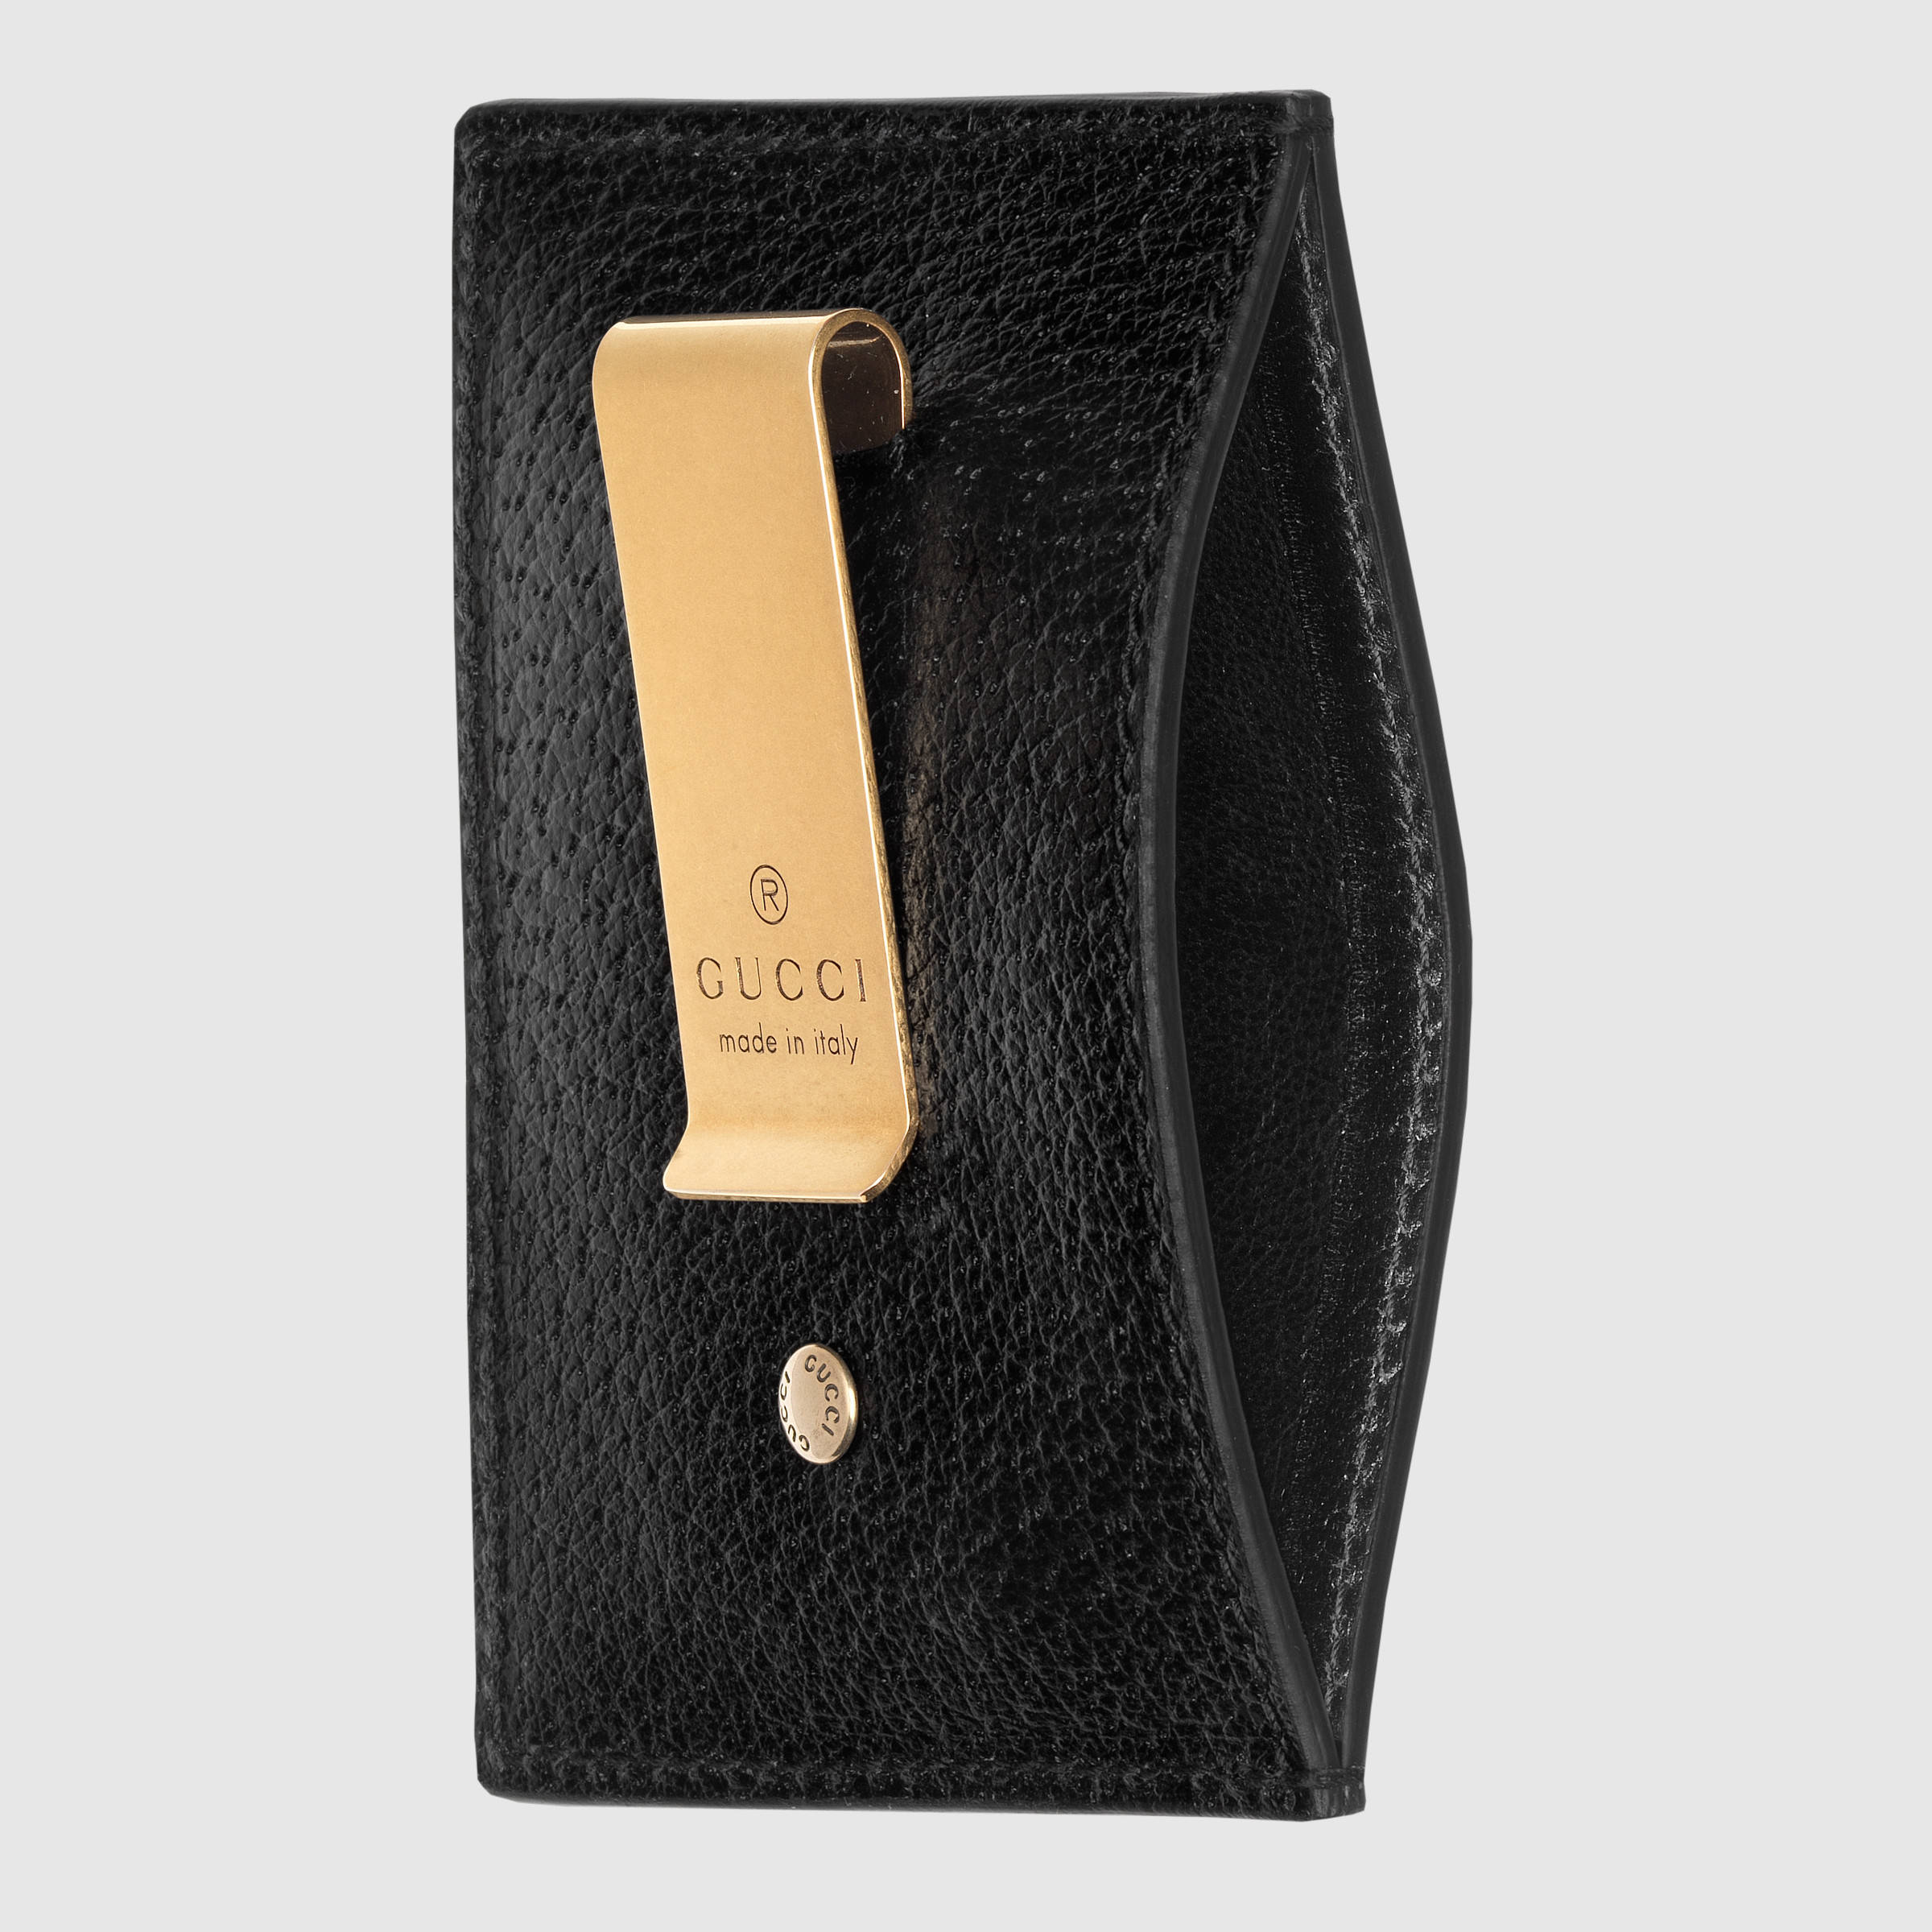 Wallets with Money Clip Attached | Prada Mens Money Clip | Gucci Money Clip